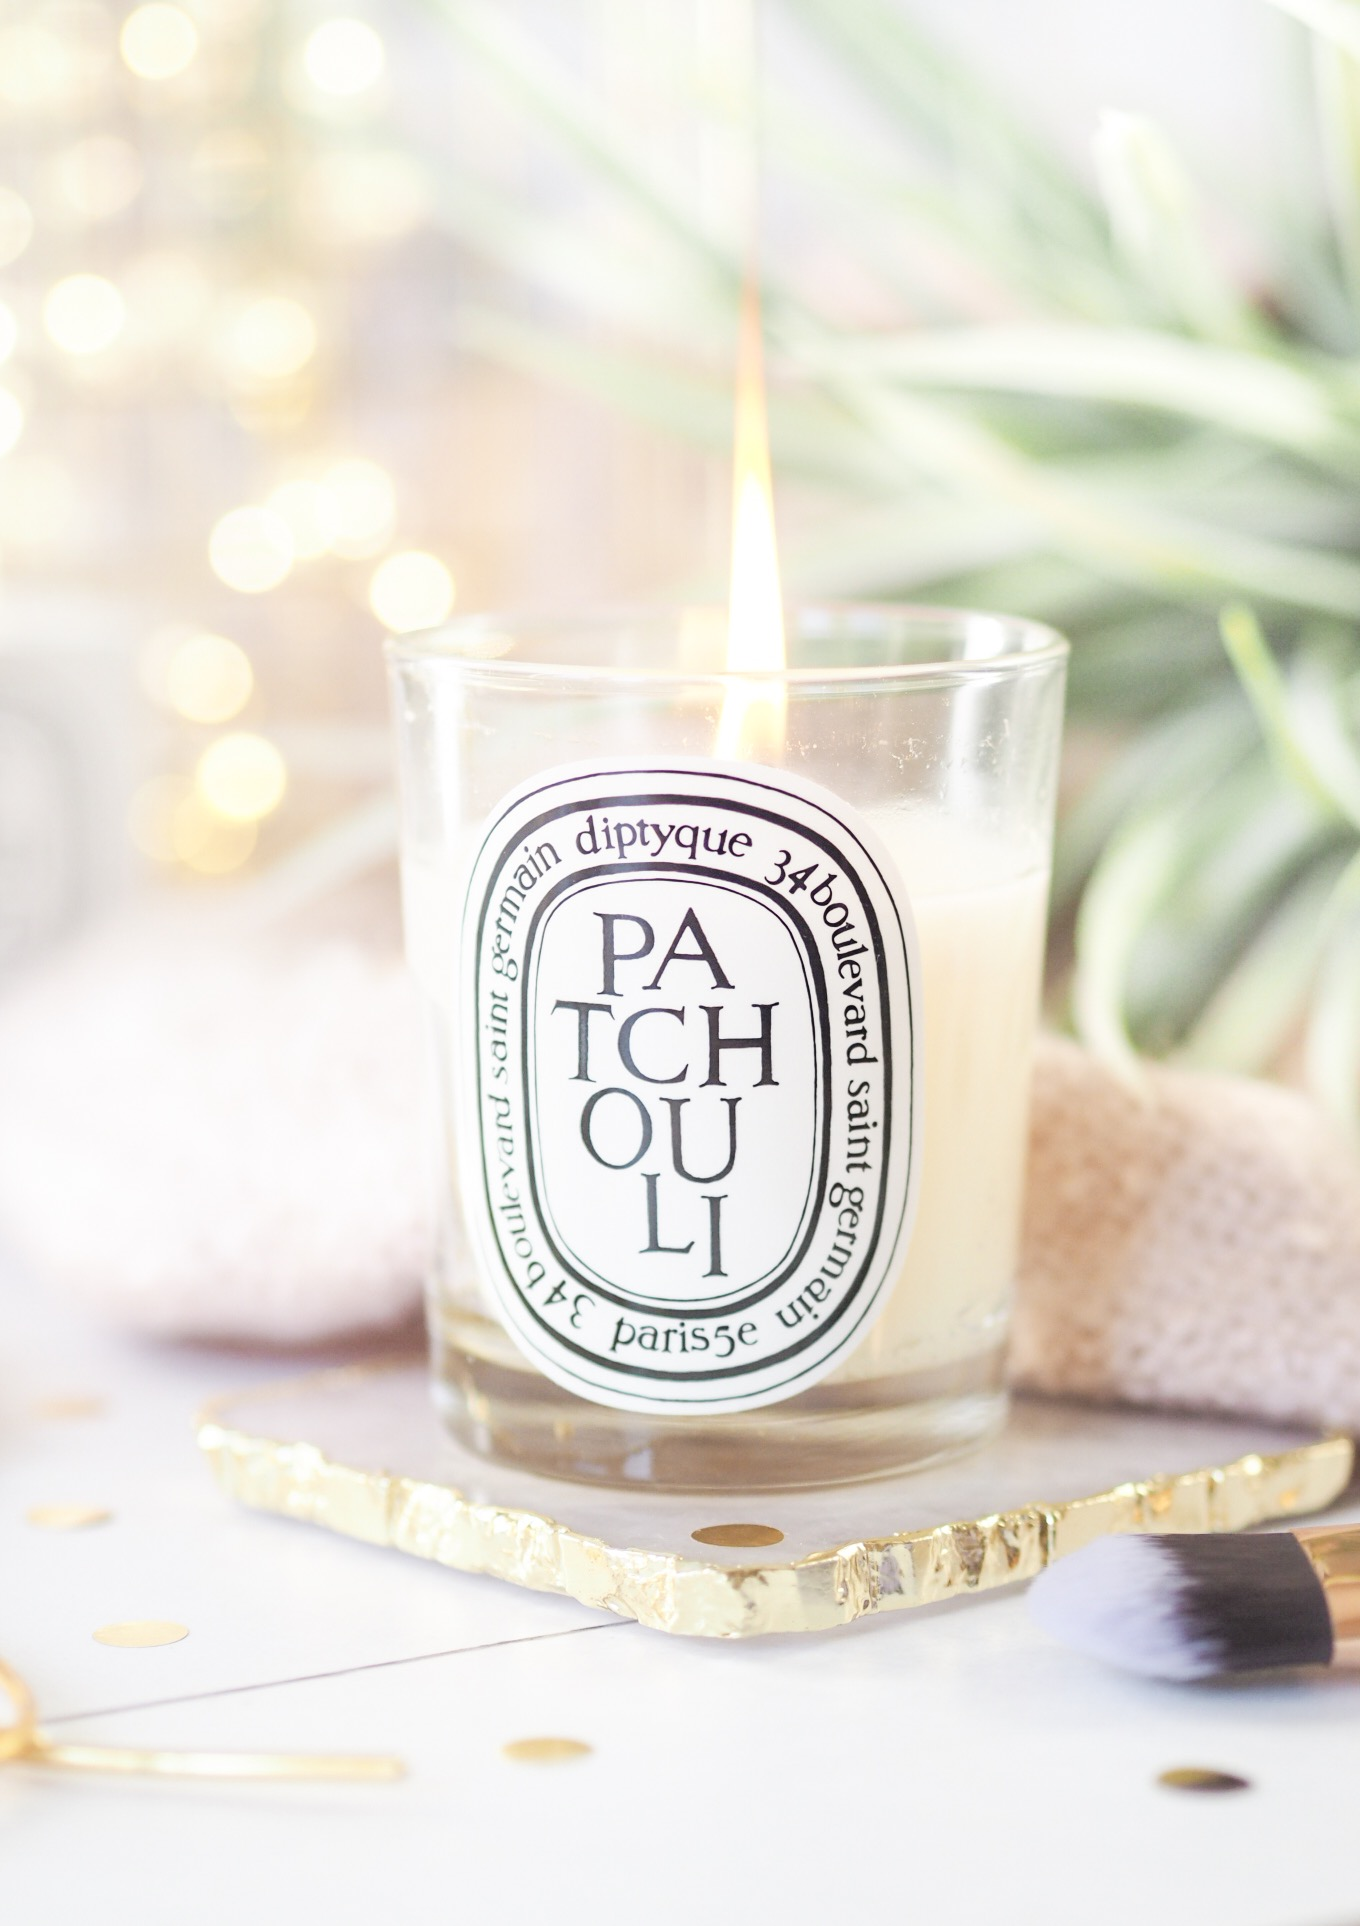 Diptyque Patchouli Candle Review